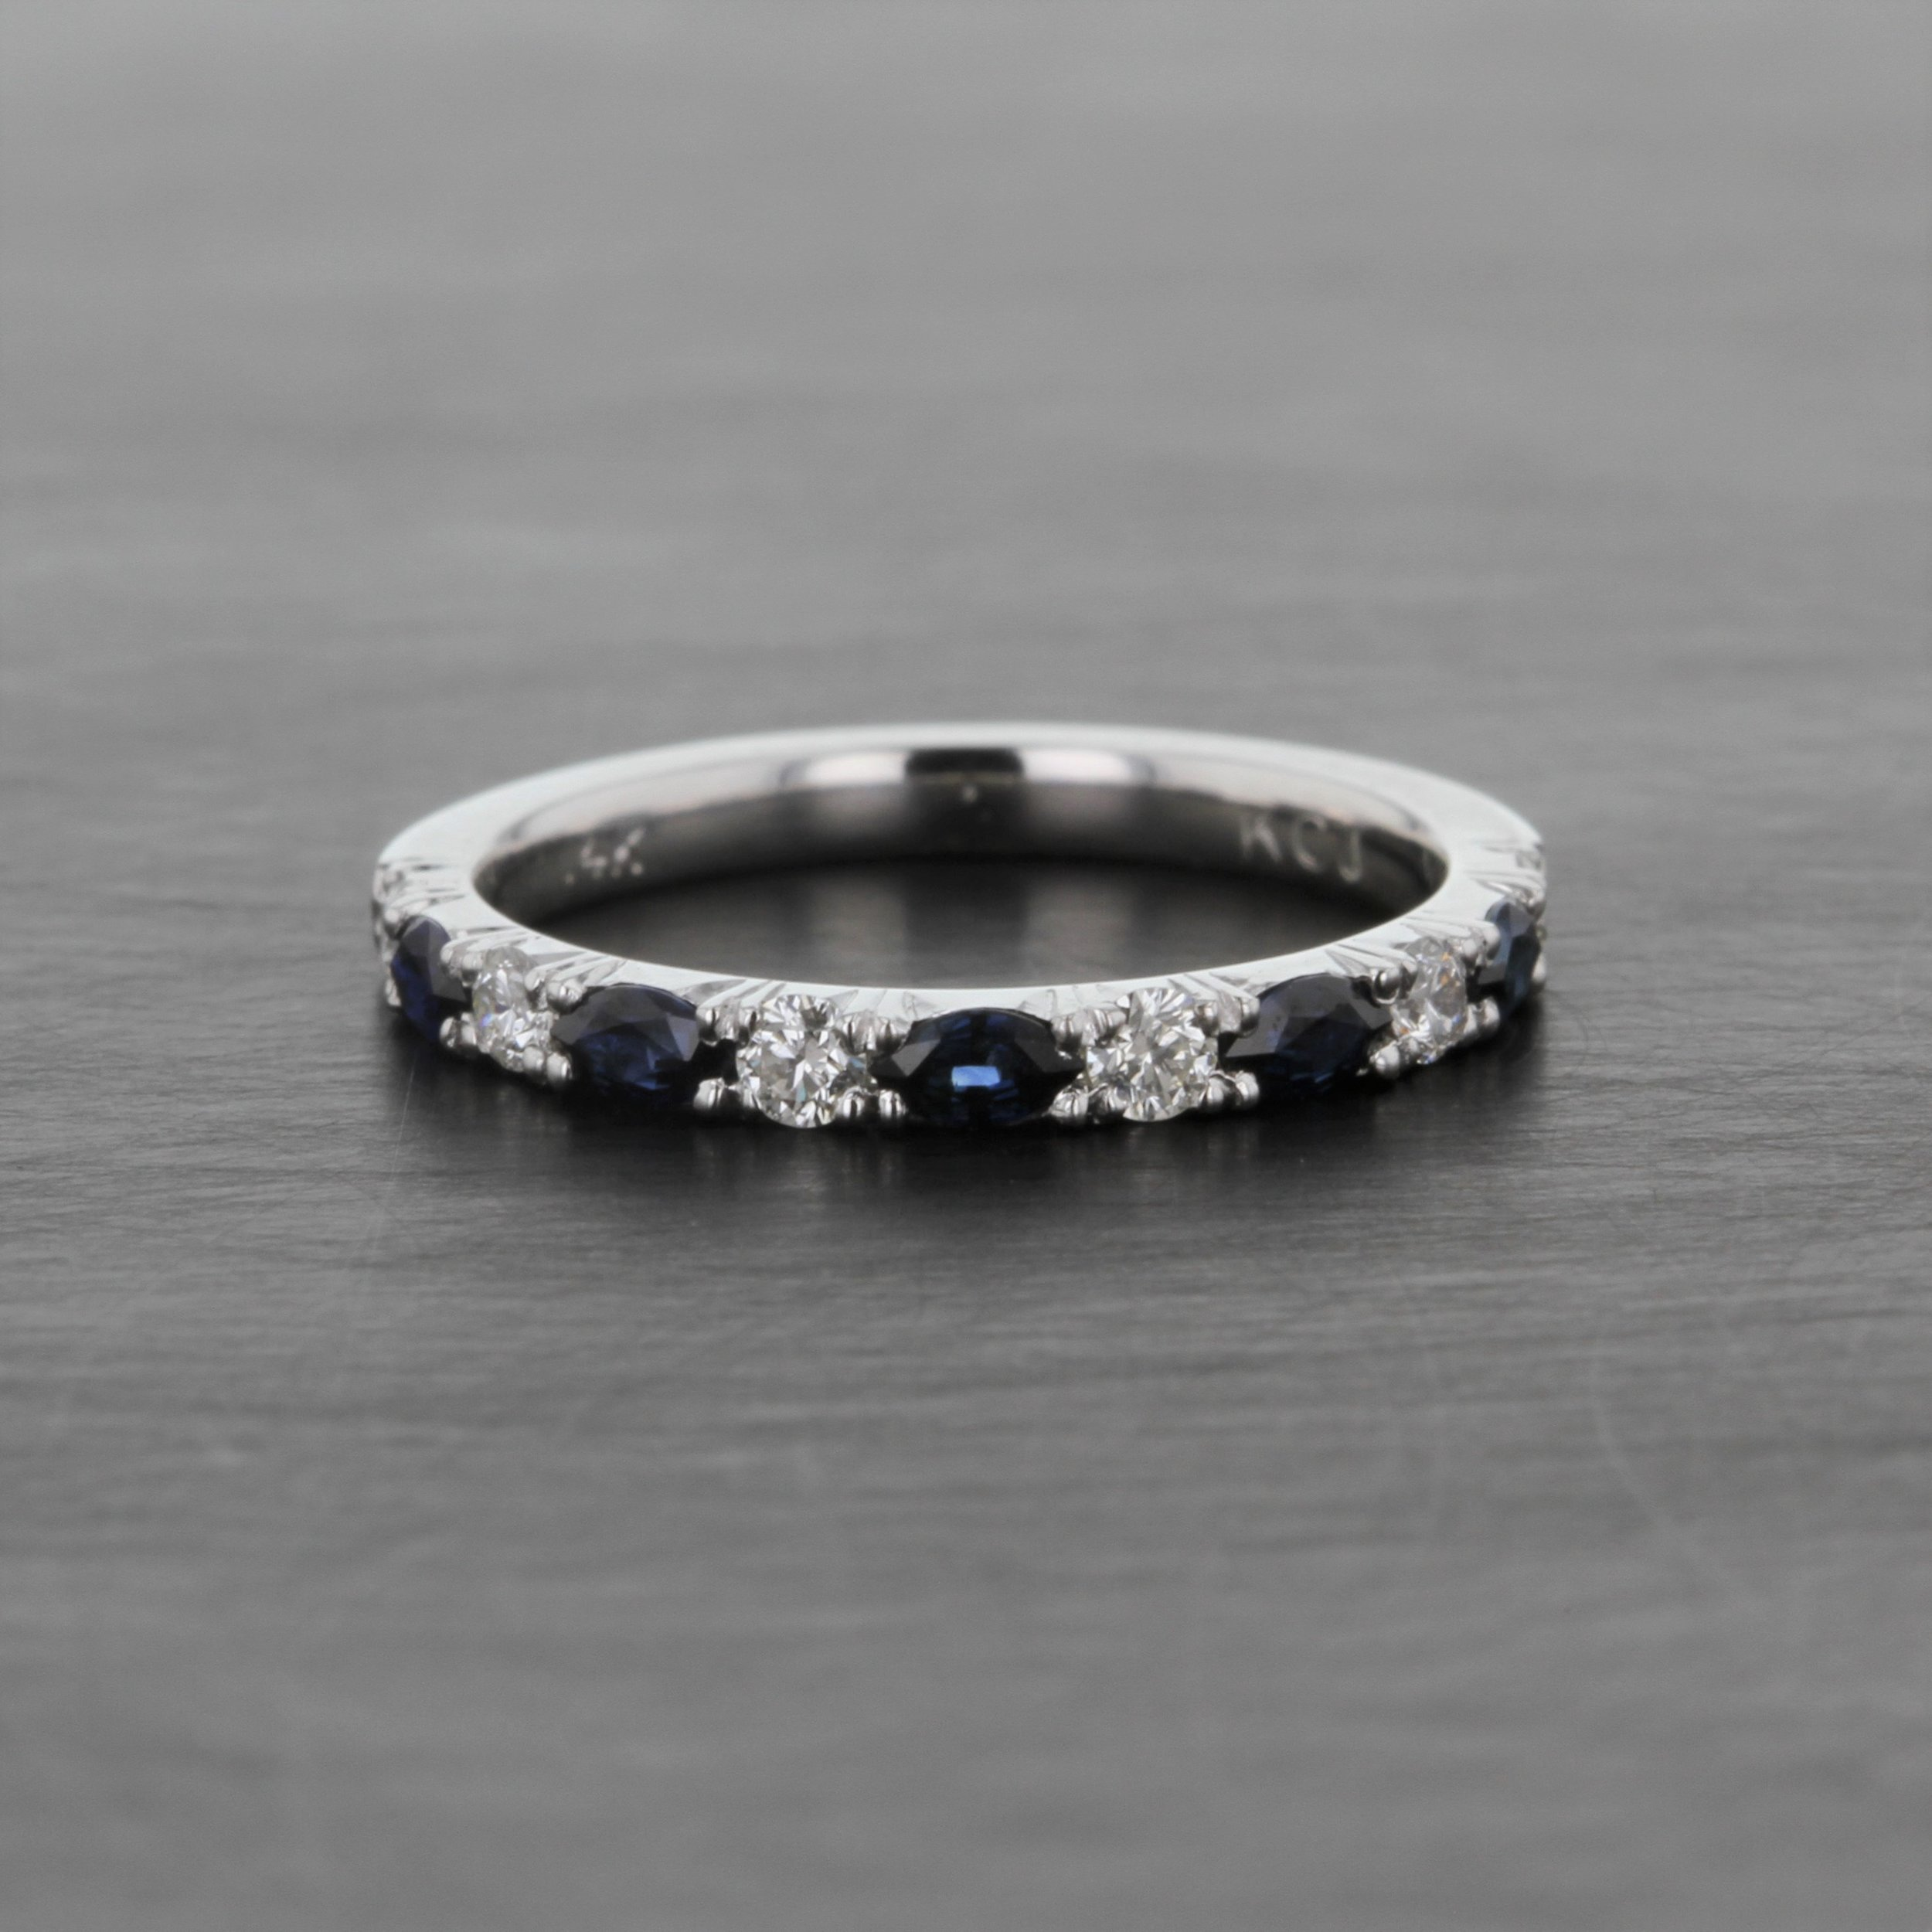 blue-sapphire-marquise-diamond-stacking-wedding-band-white-gold.jpg